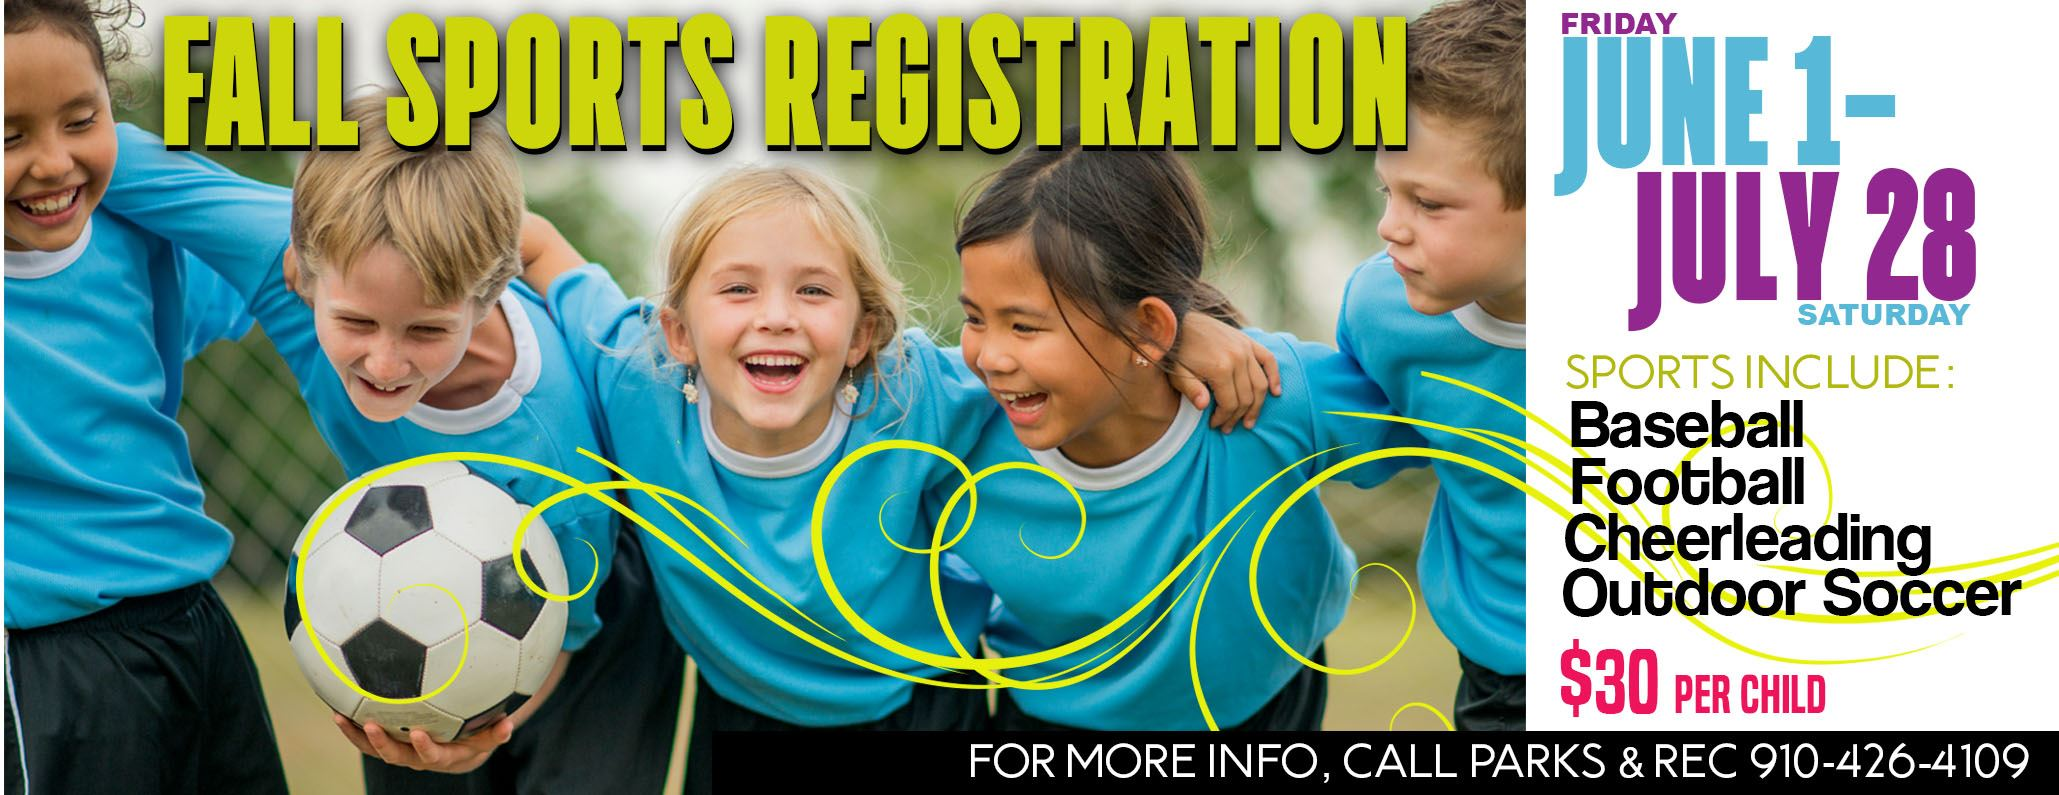 FC-Sports Registration